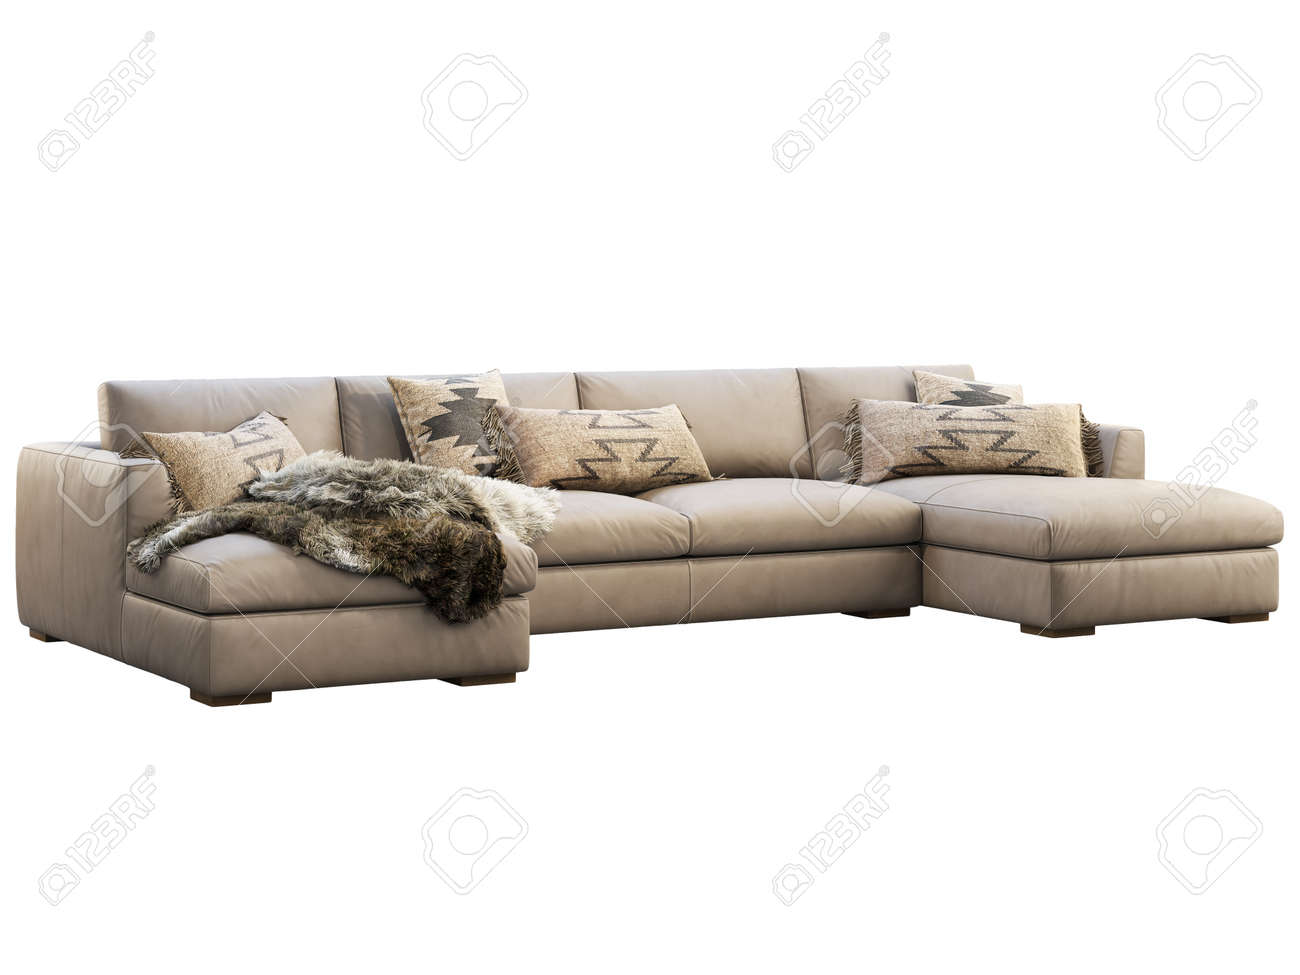 Chalet Modular Leather Sofa With Chaise Lounge Leather Upholstery Stock Photo Picture And Royalty Free Image Image 138175002